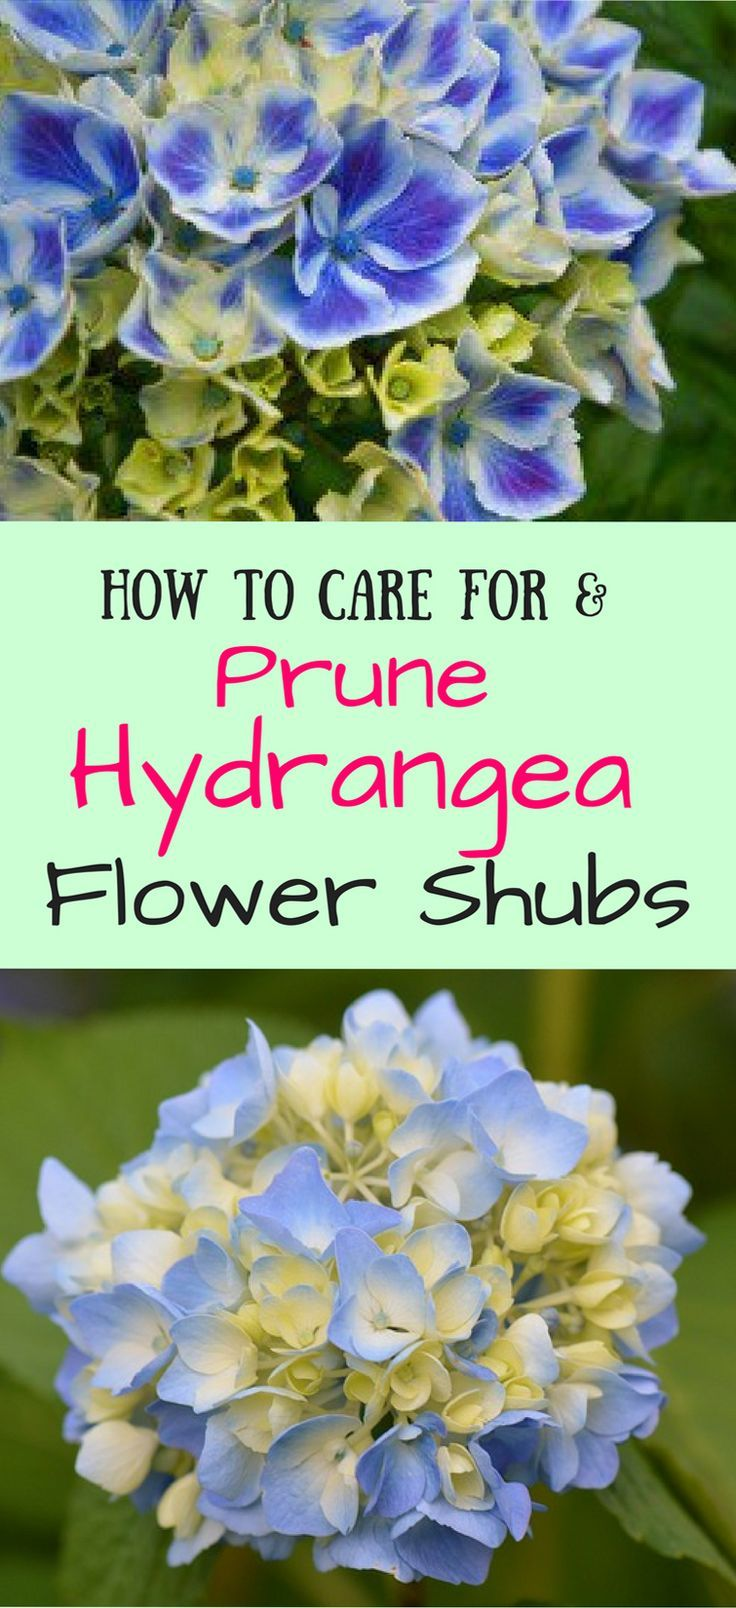 How To Care For And Prune Hydrangea Flower Shrubs Garden Ideas